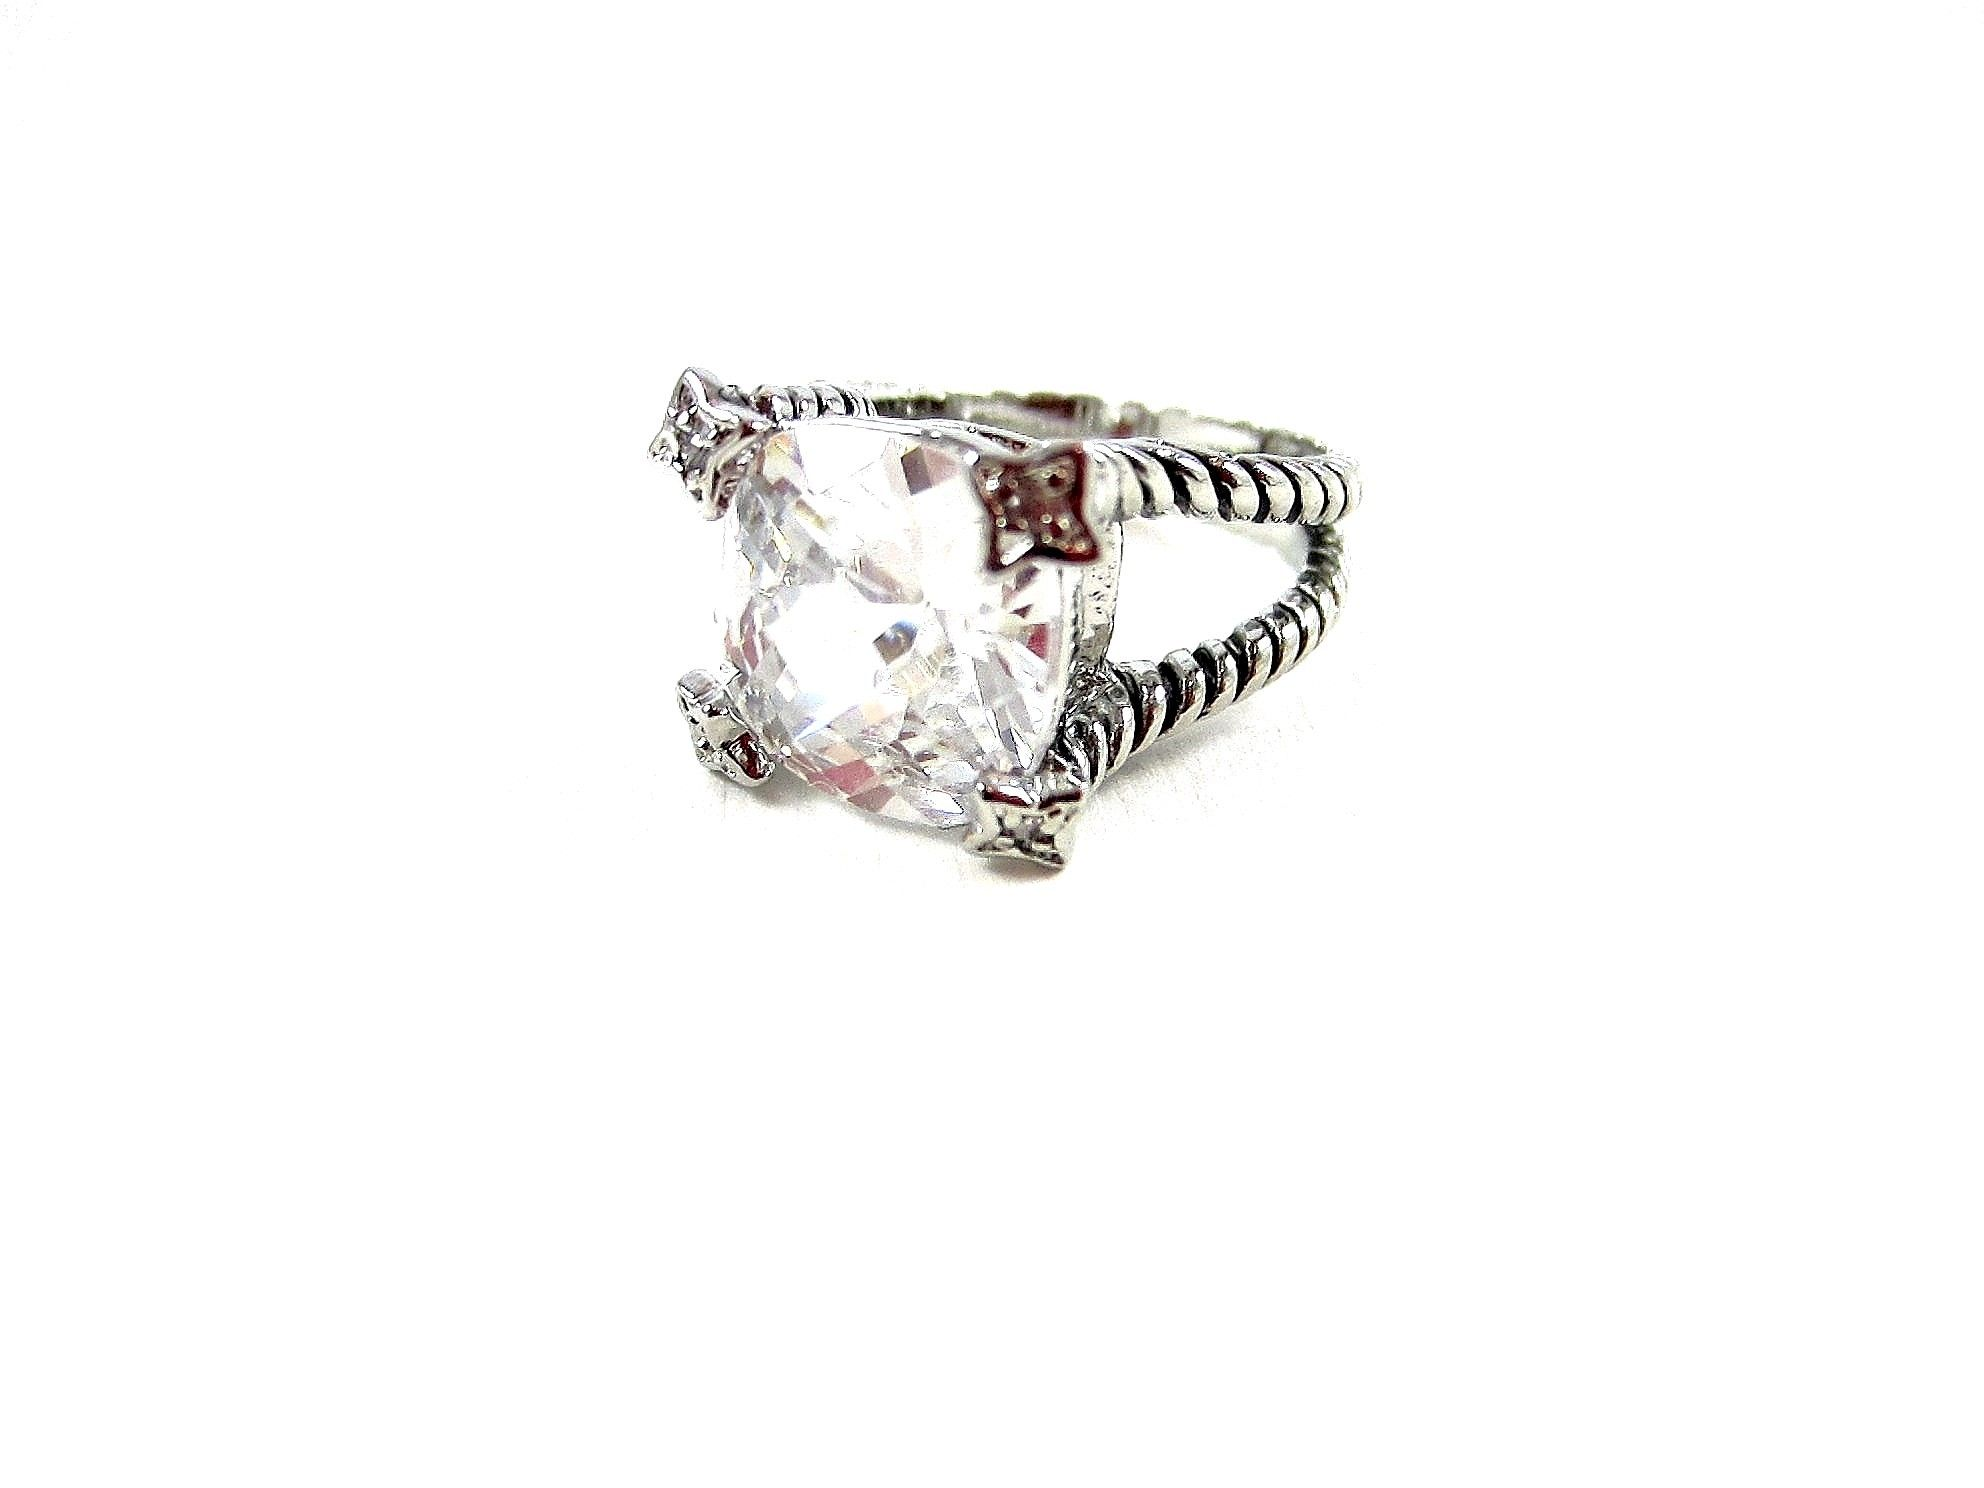 David yurman inspired ring, large crystal stone with vintage feel twisted silver setting, Stunning!!! Only $36.95